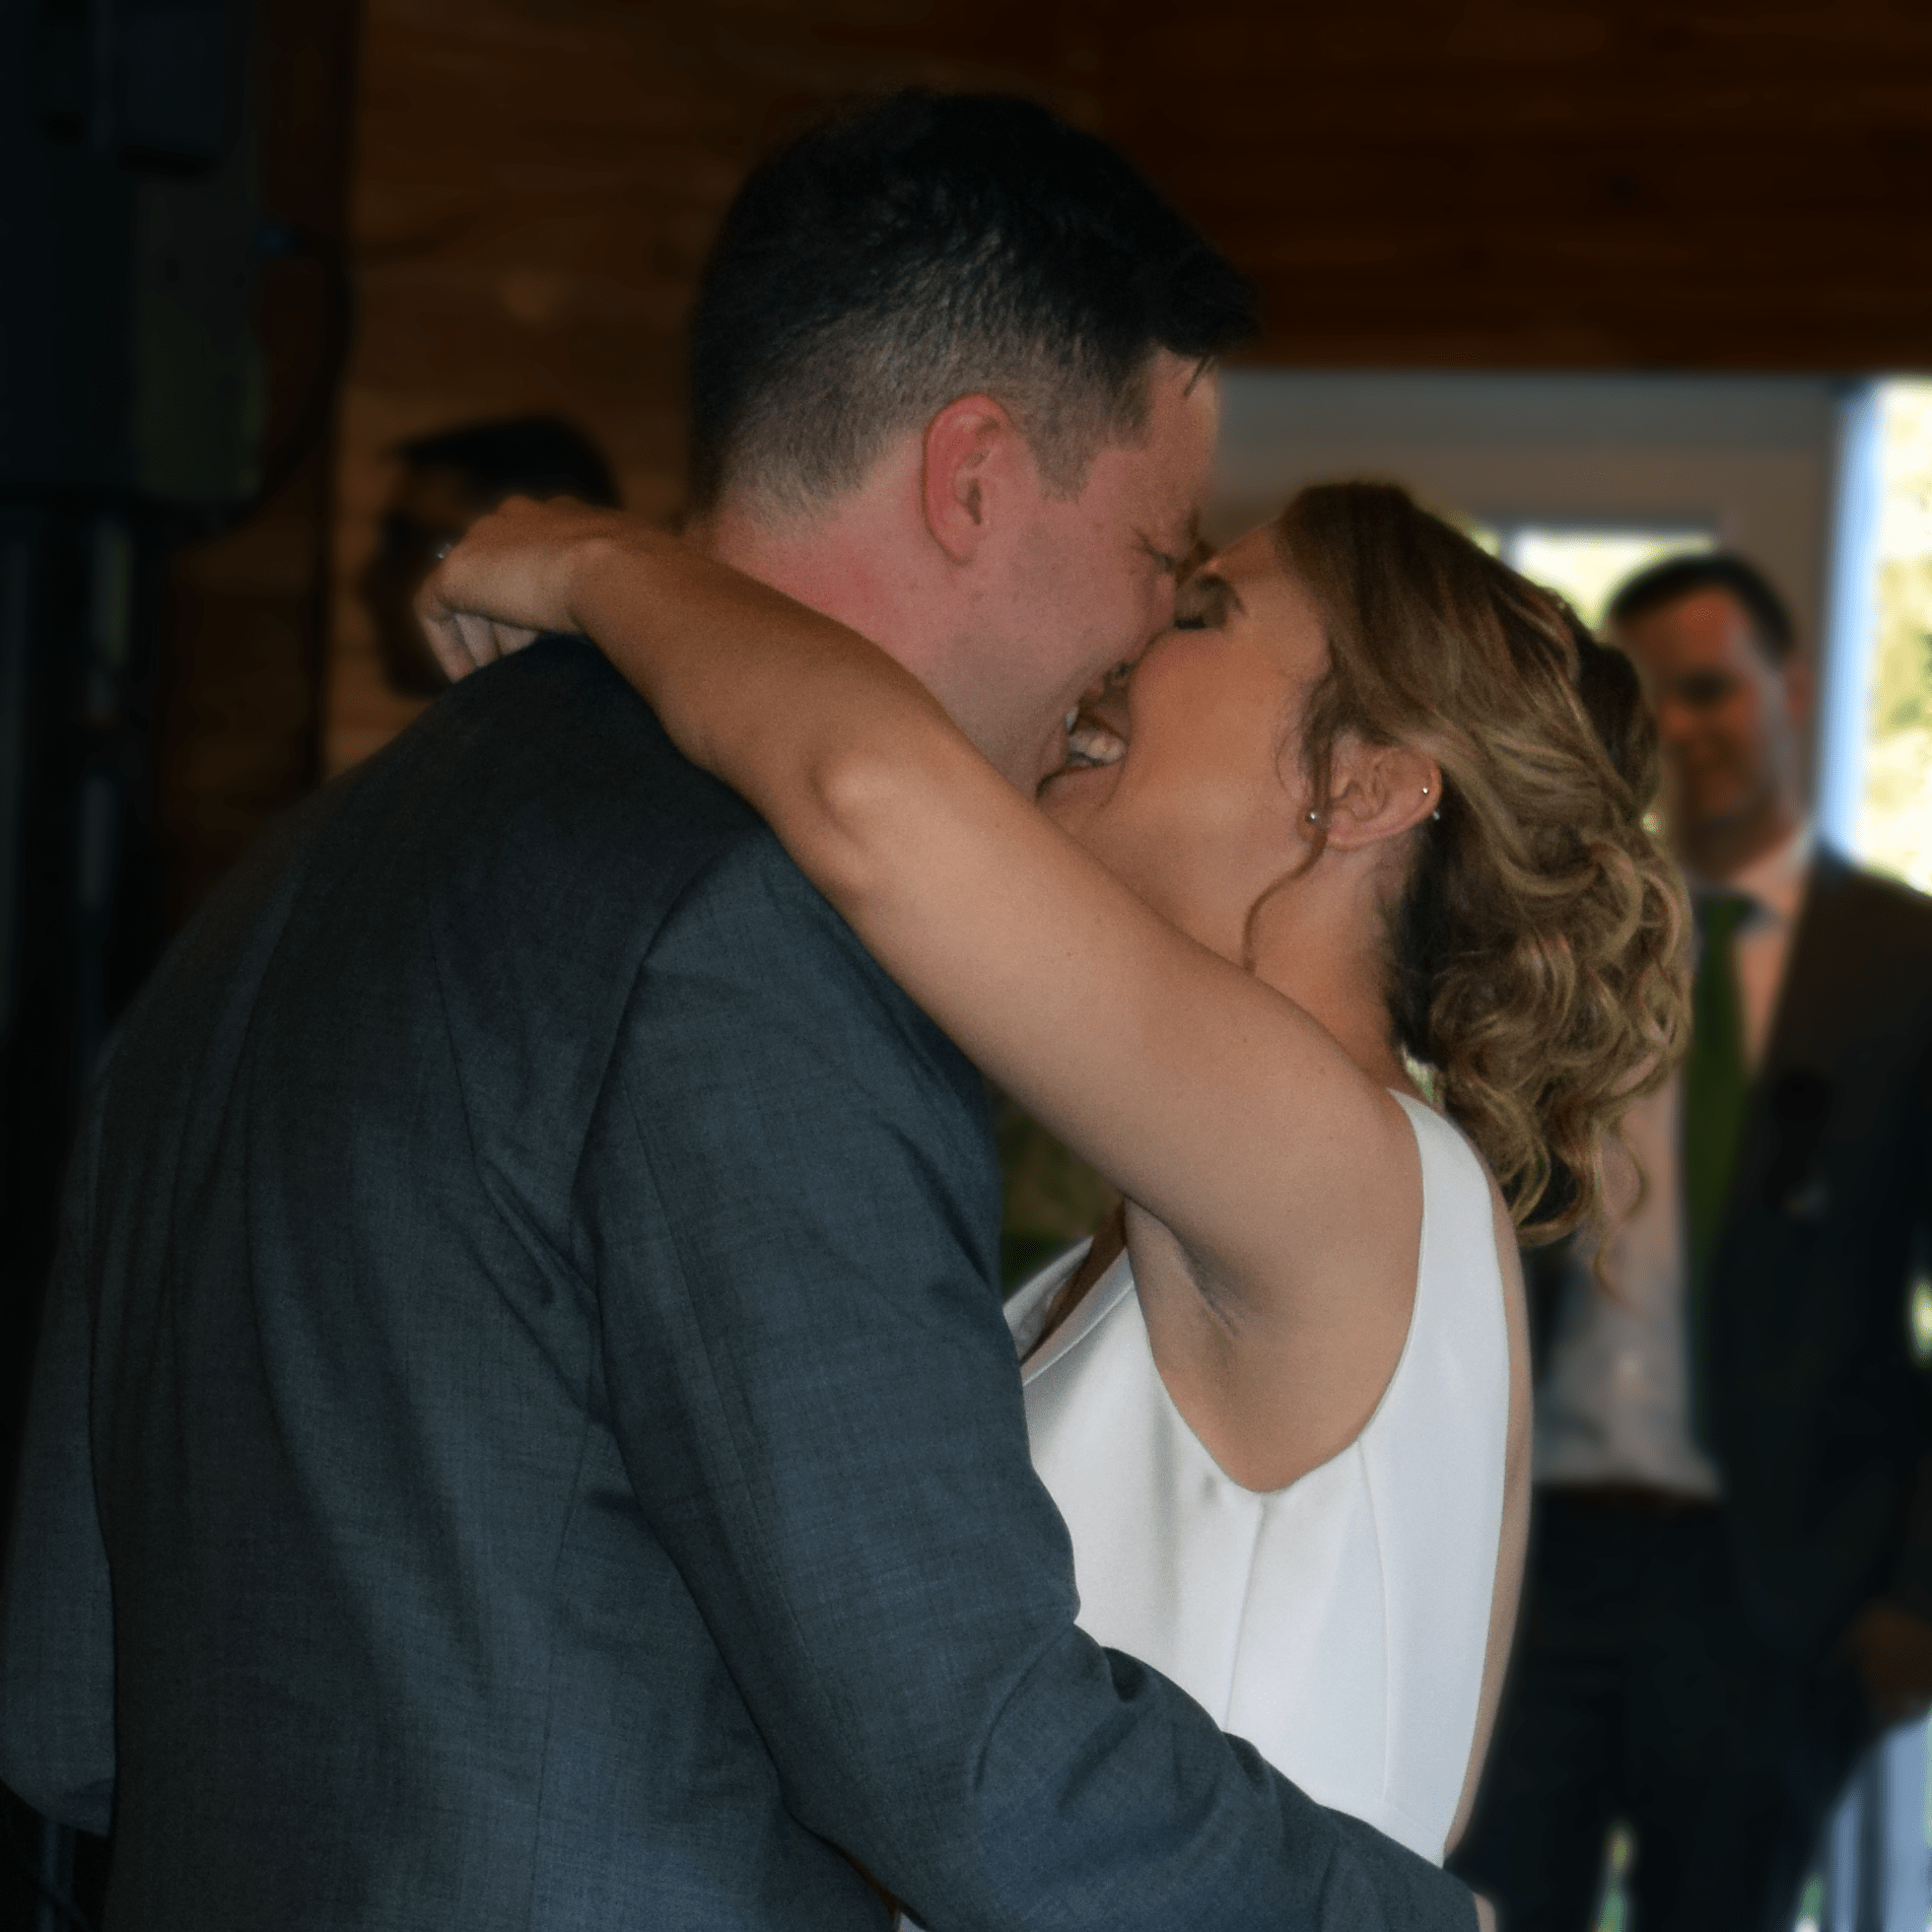 Wedding: Leigh and Kyle at Pumpelly House, Owego, 9/21/19